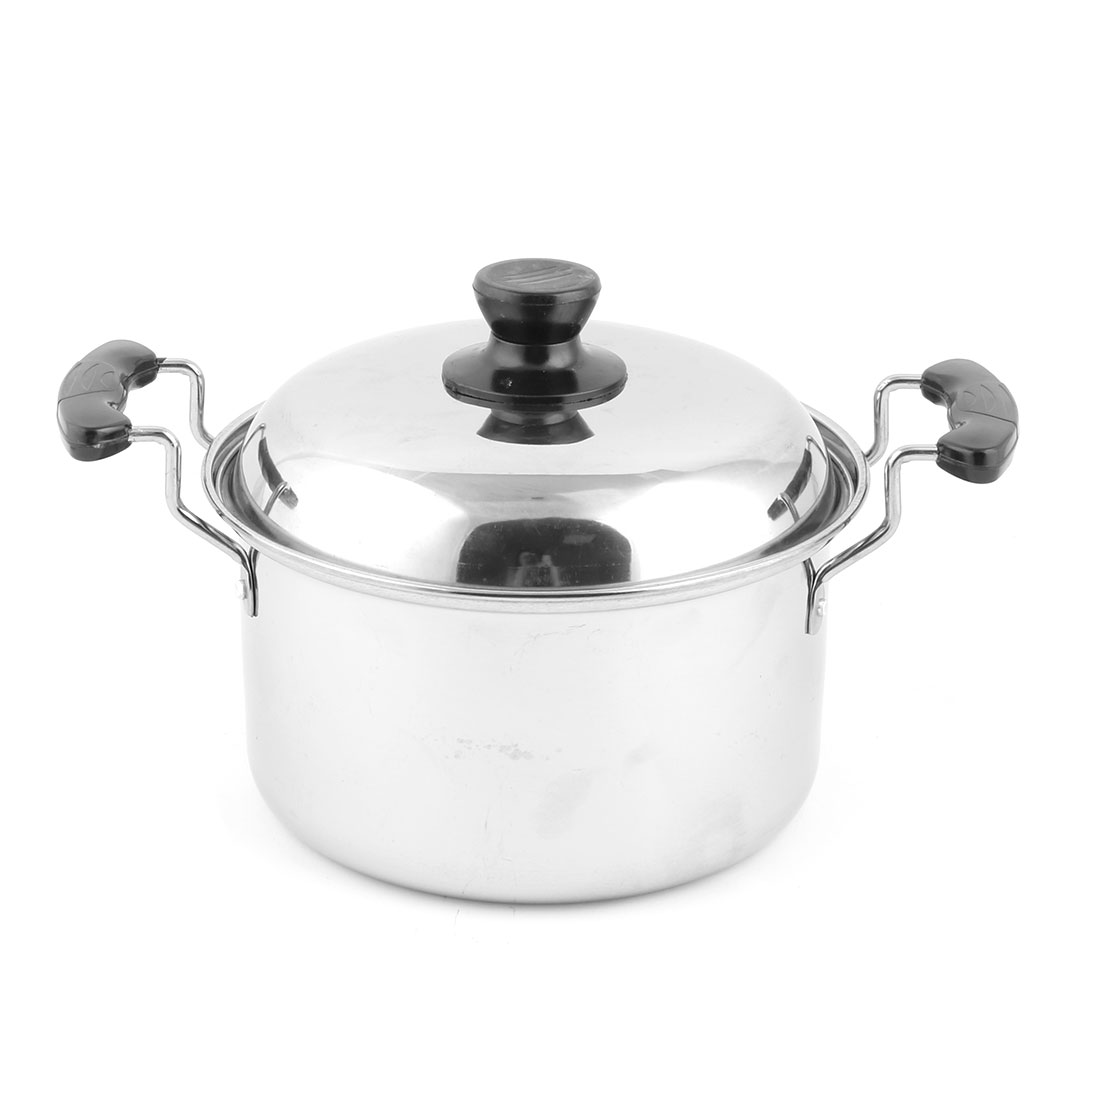 Restaurant Plastic Grip Soup Porrige Cooking Tool Food Container Stockpot Silver Tone